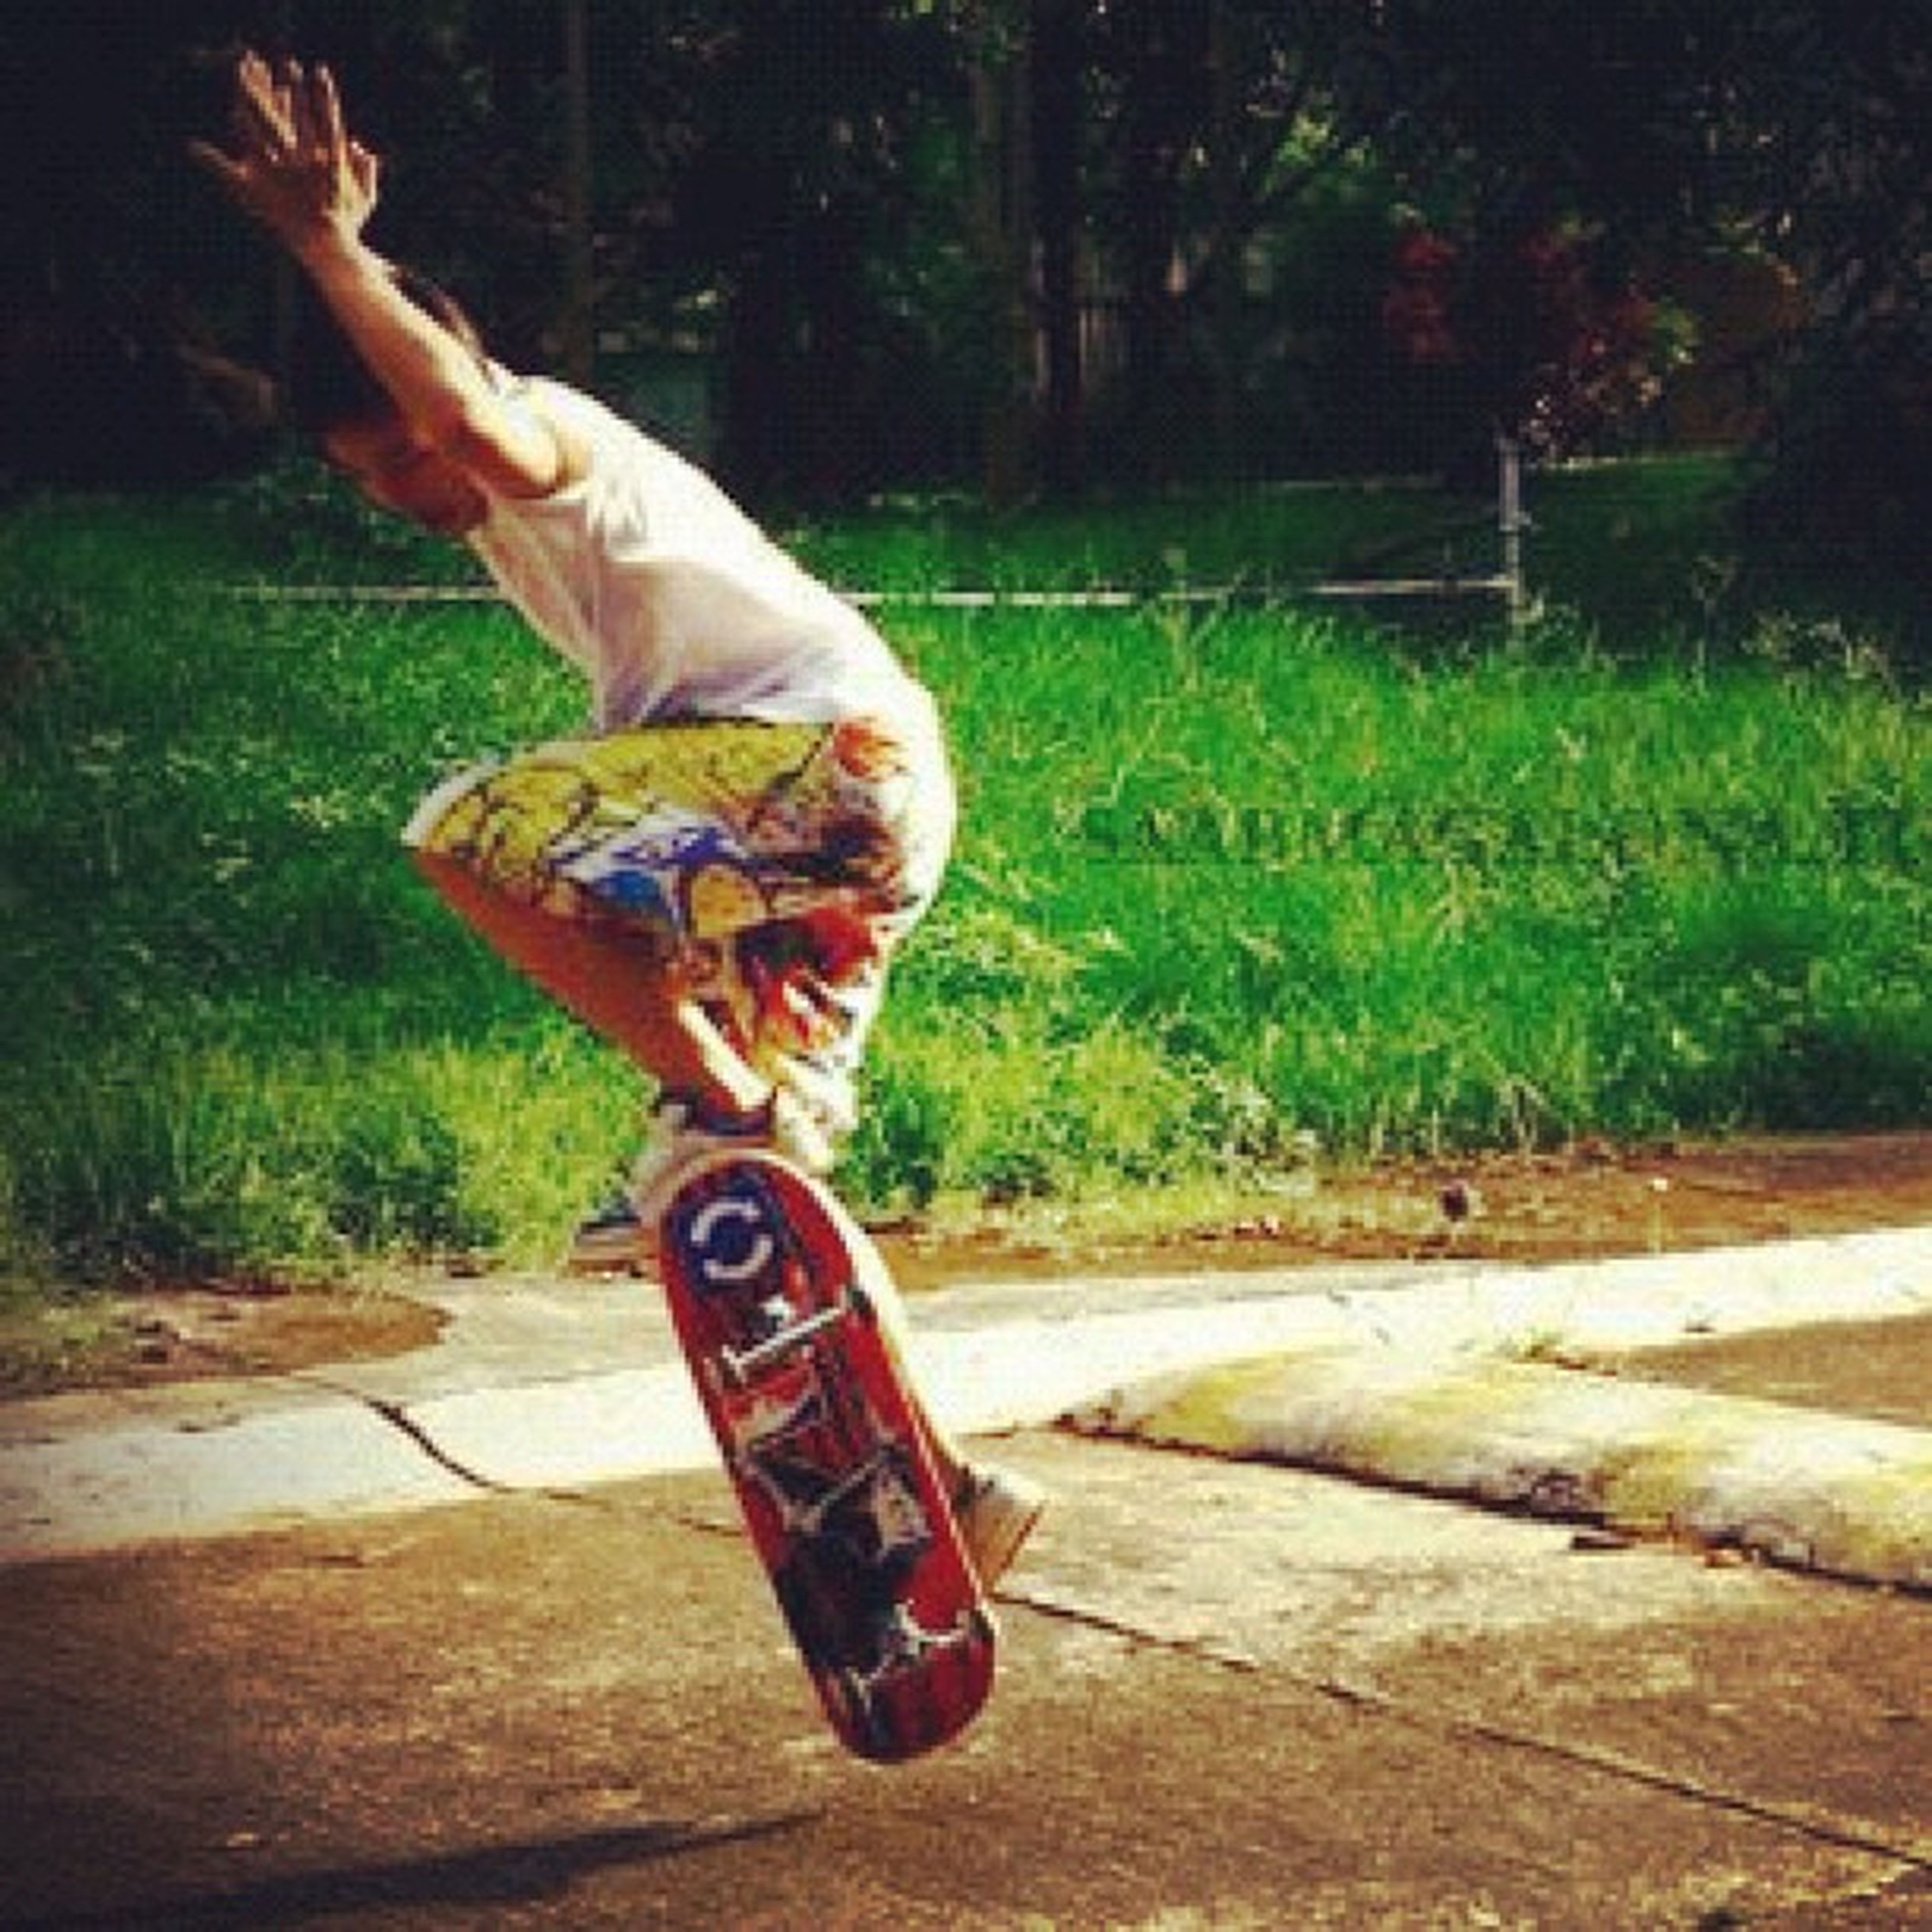 lifestyles, full length, leisure activity, holding, tree, casual clothing, motion, grass, jumping, childhood, sport, skill, person, side view, skateboard, outdoors, skateboarding